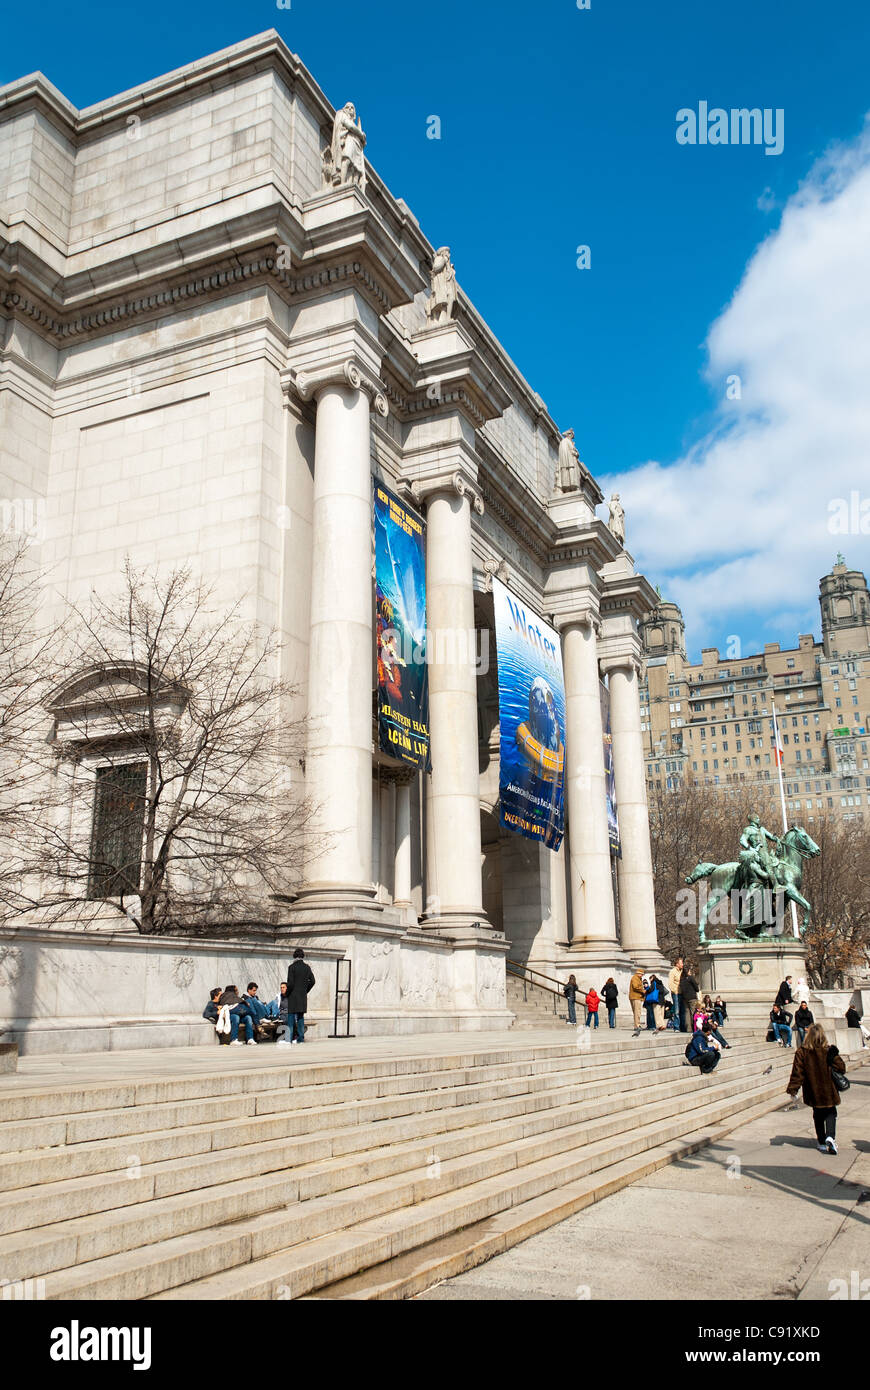 Natural History Museum New York City USA - Stock Image